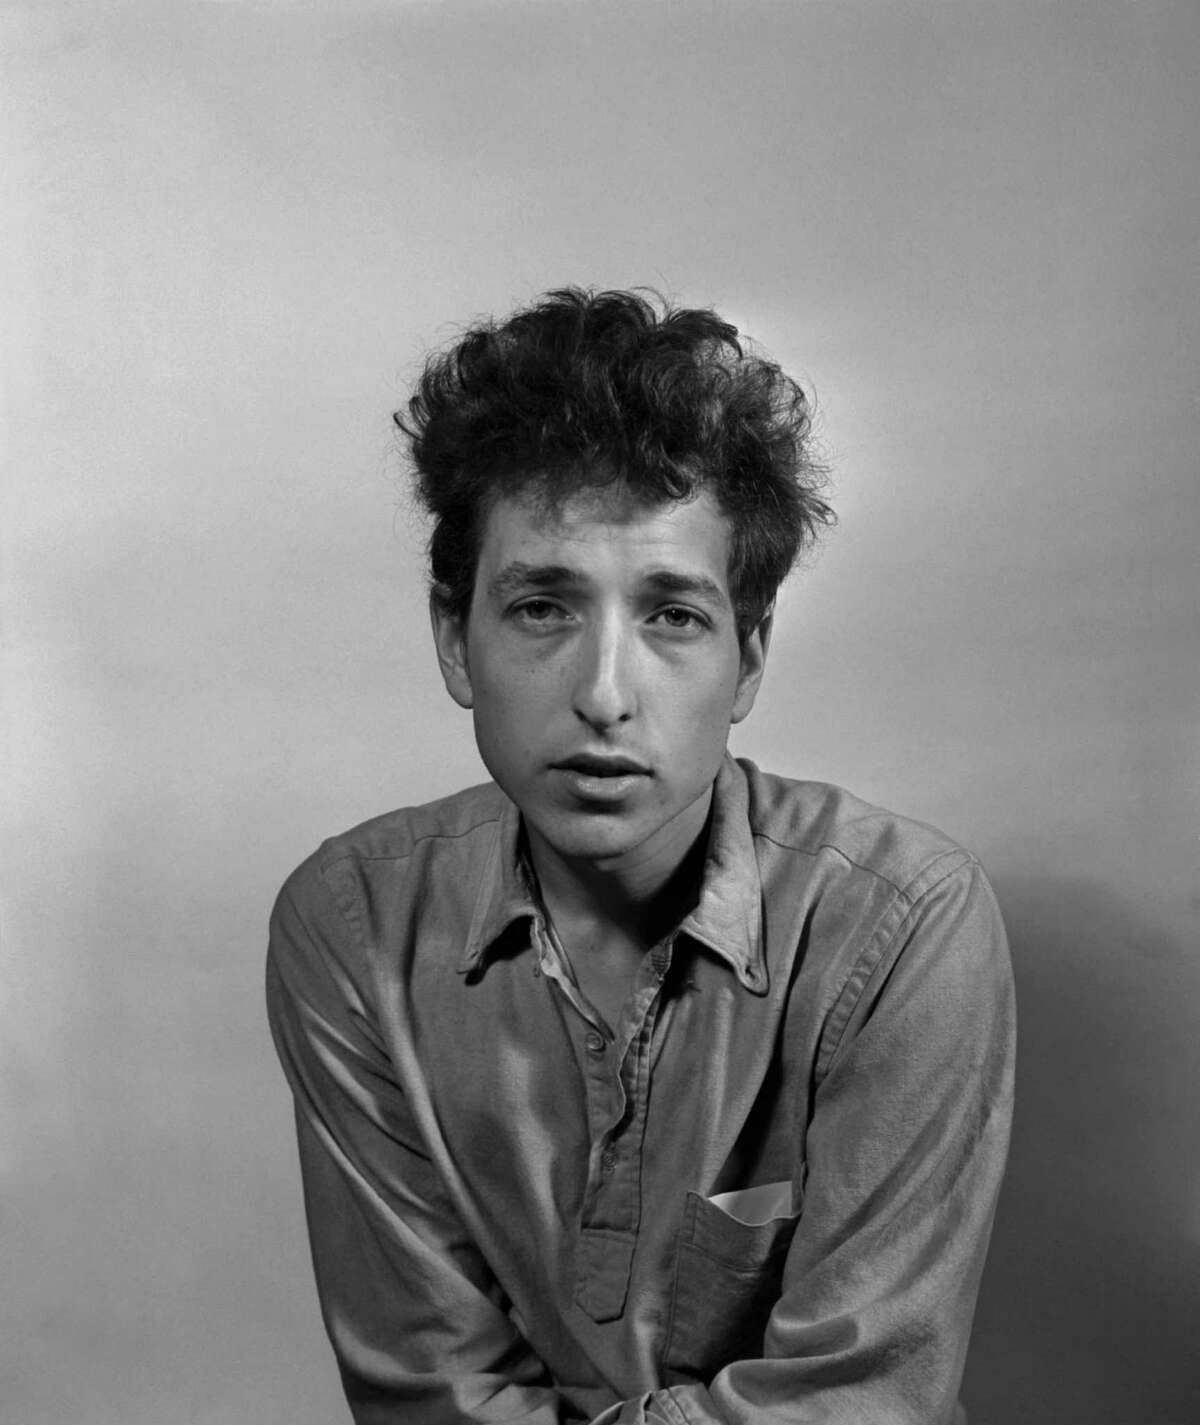 FILE-- Bob Dylan in New York in 1963. Dylan, one of the worldÂ?'s most influential rock musicians, was awarded the Nobel Prize in Literature on Oct. 13, 2016, for Â?